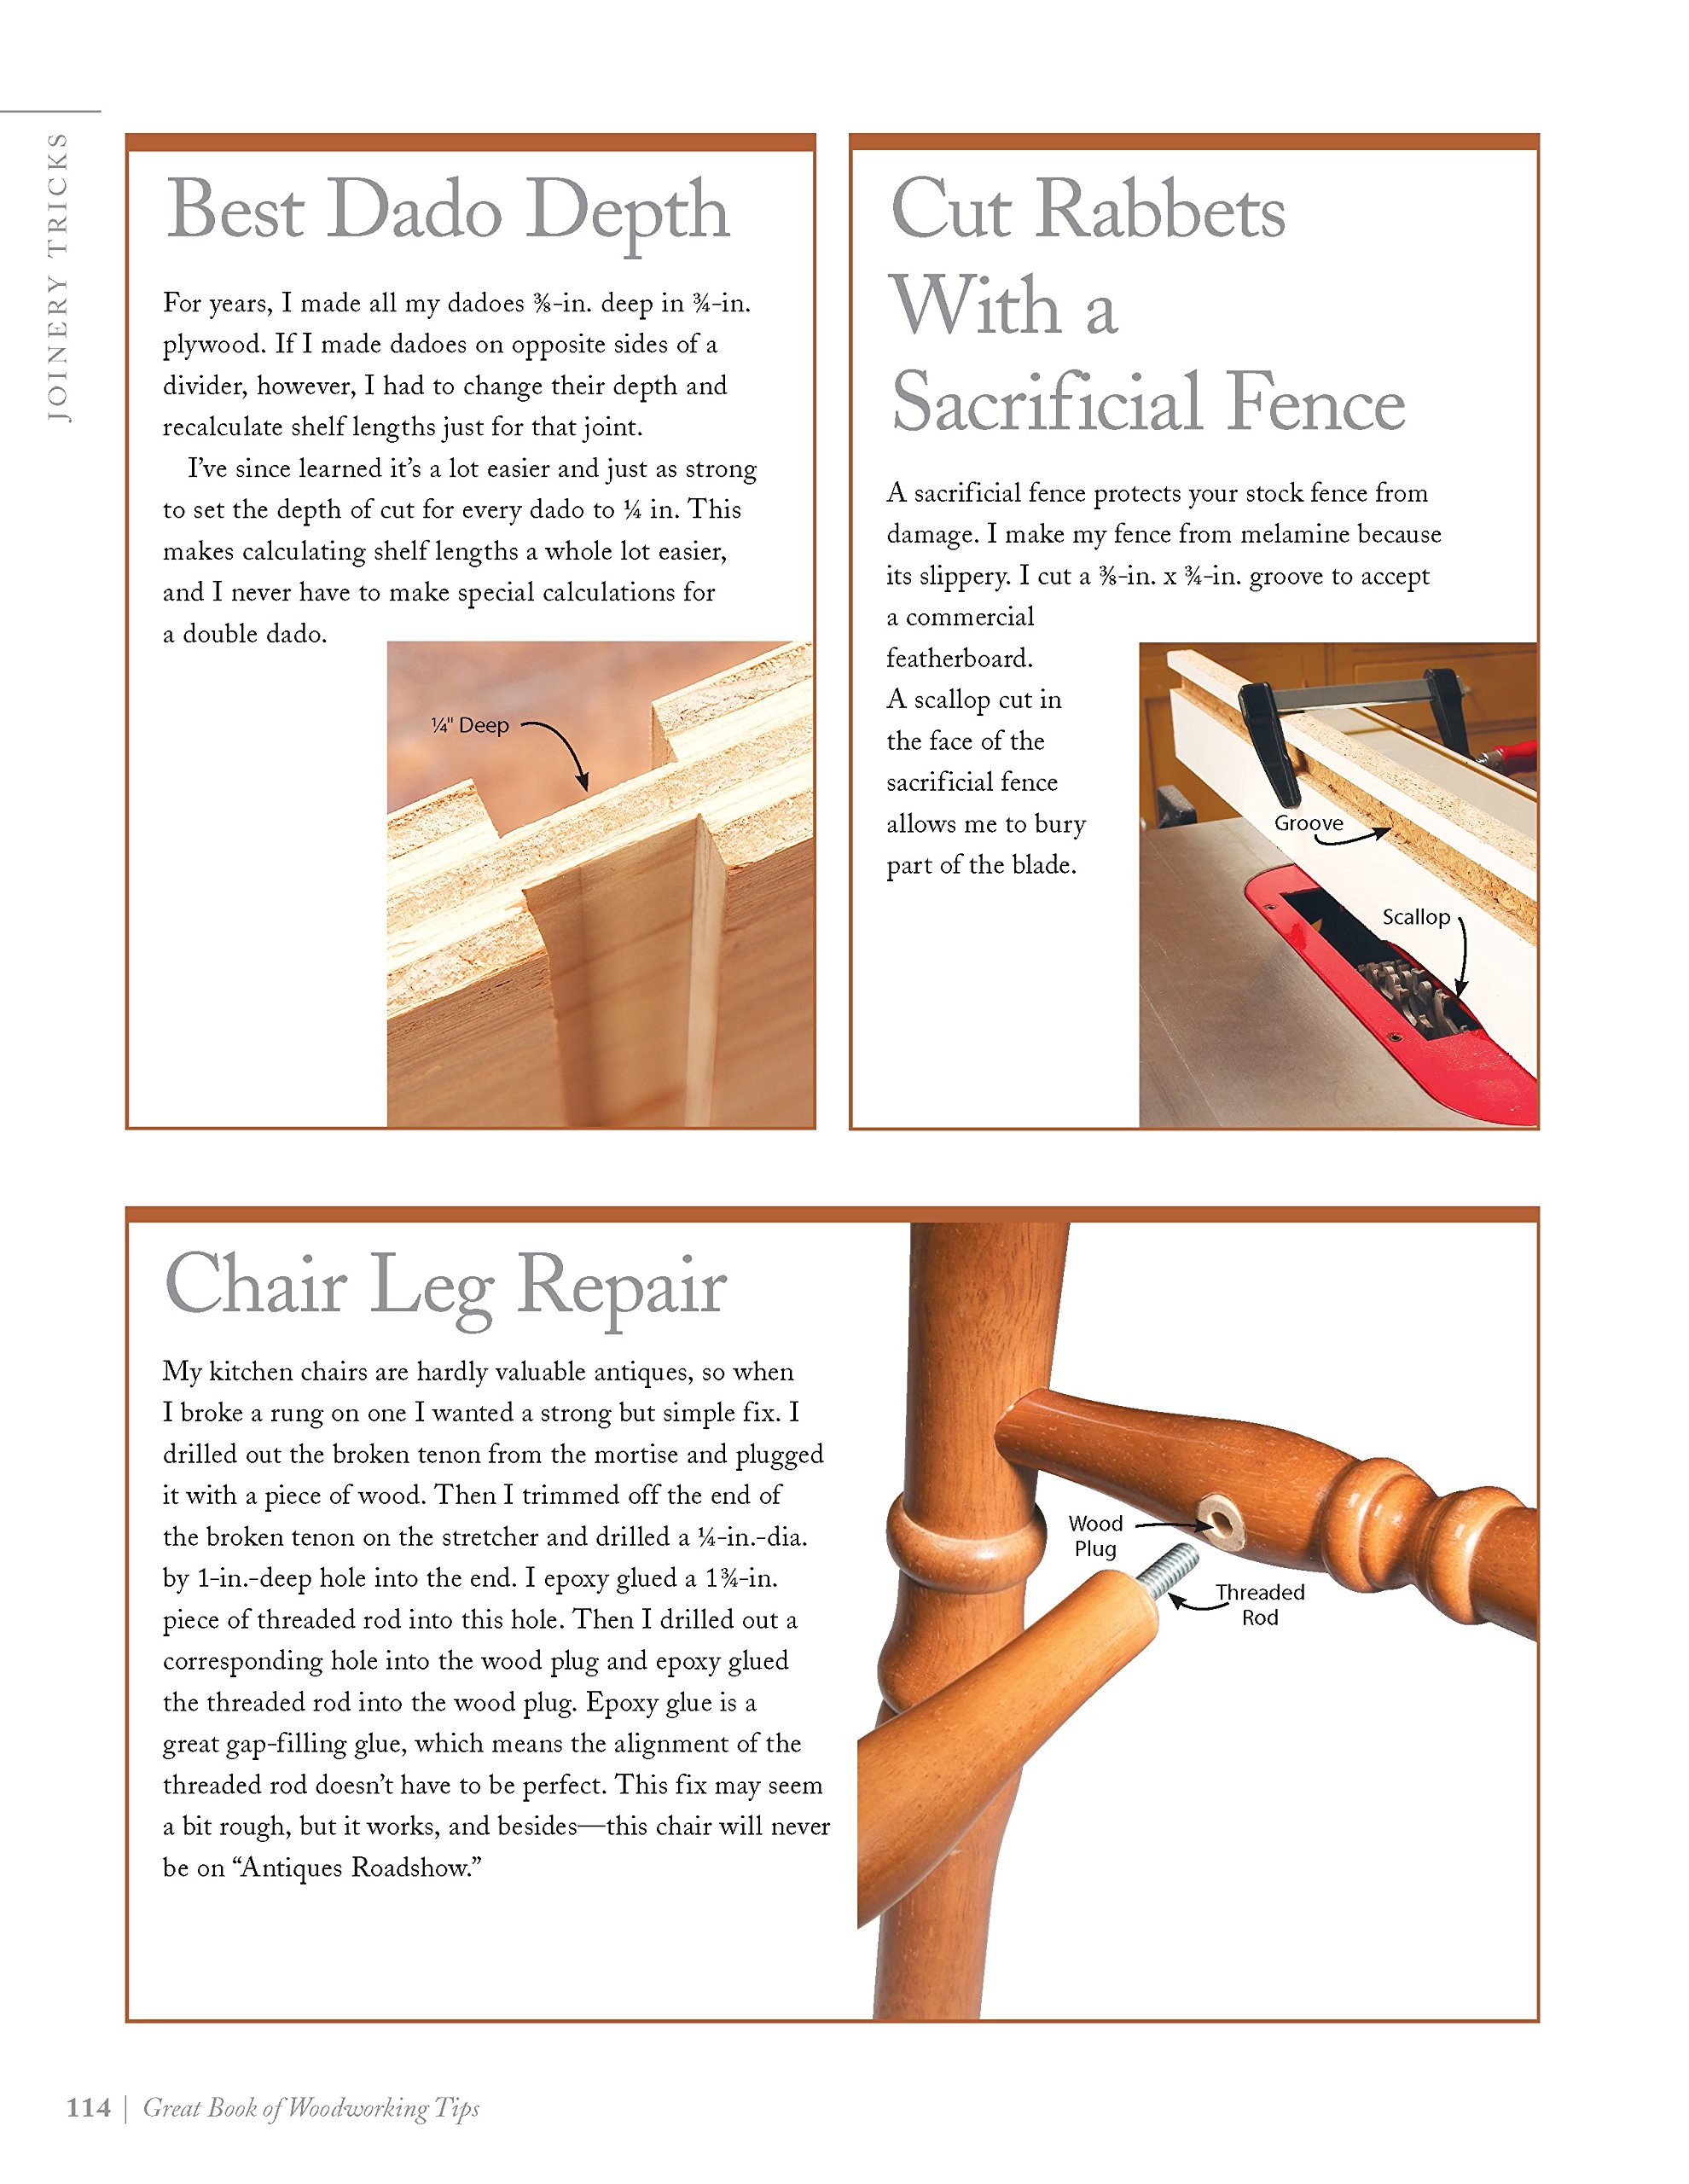 Great book of woodworking tips over 650 ingenious workshop tips great book of woodworking tips over 650 ingenious workshop tips techniques and secrets from the experts at american woodworker fox chapel publishing fandeluxe Image collections